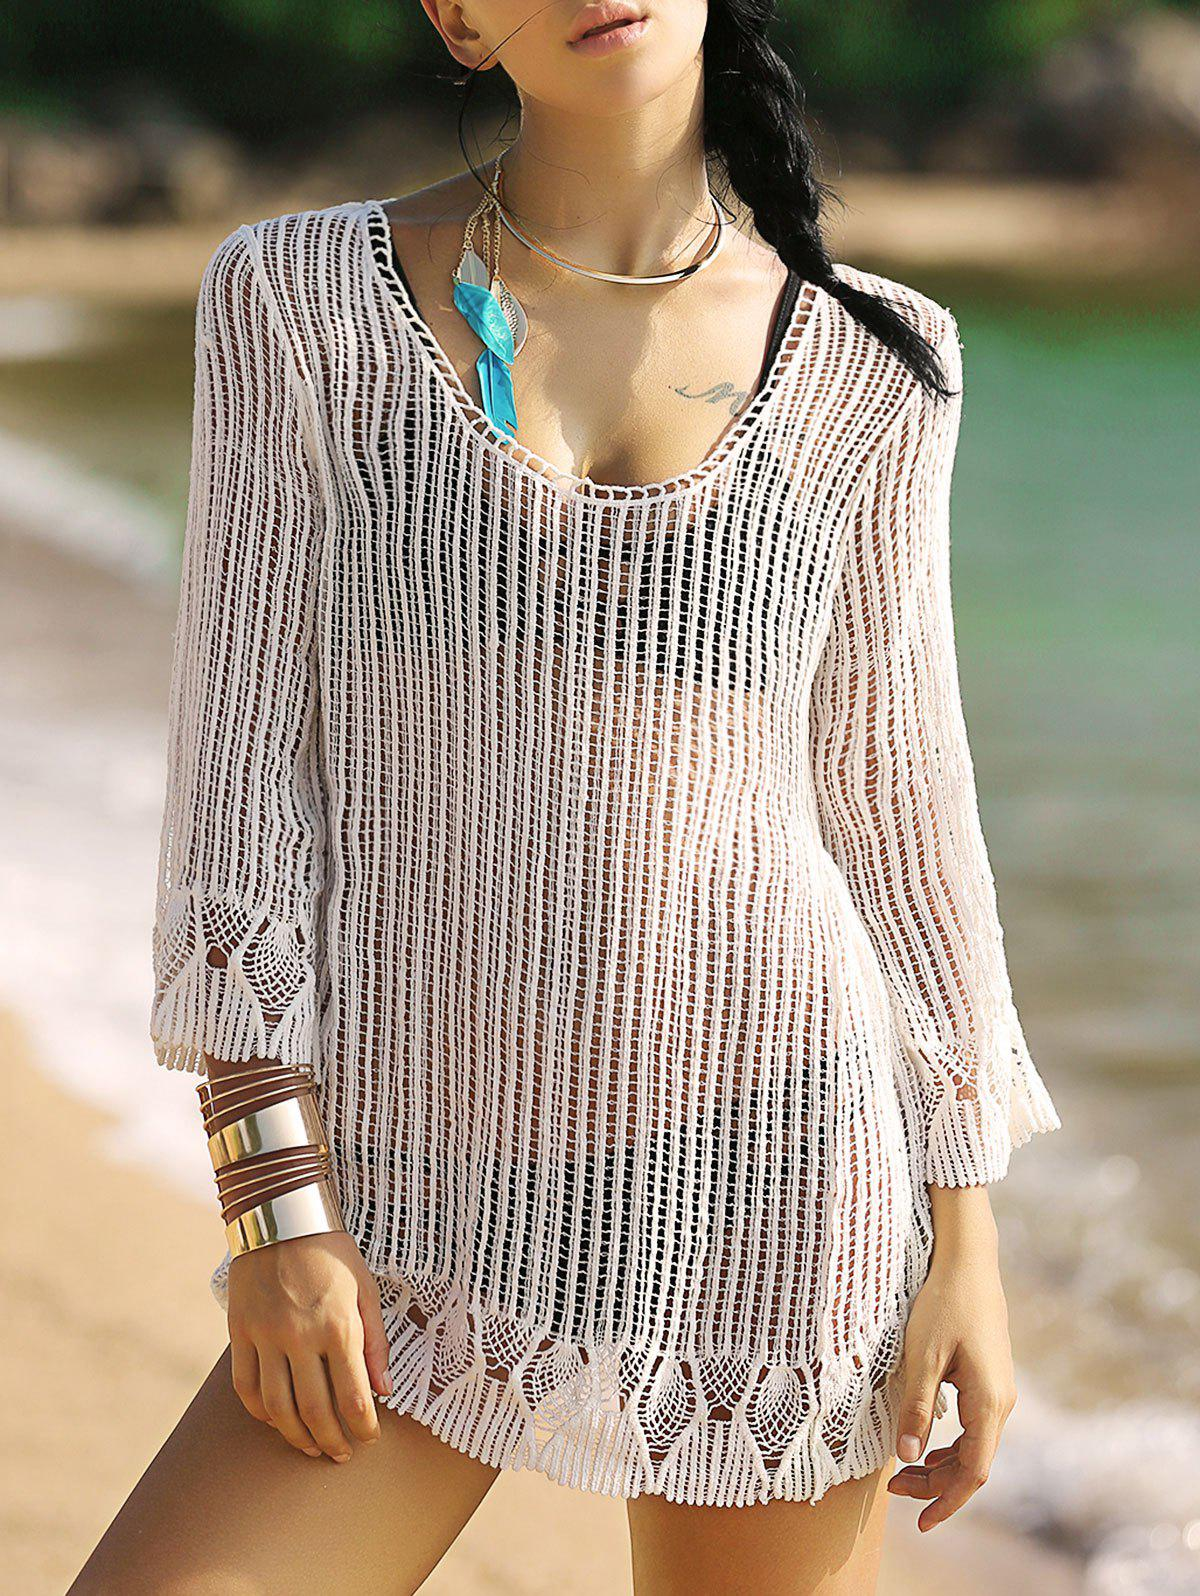 Alluring Women's 3/4 Sleeve Hollow Out Fringed Cover-Up - WHITE ONE SIZE(FIT SIZE XS TO M)